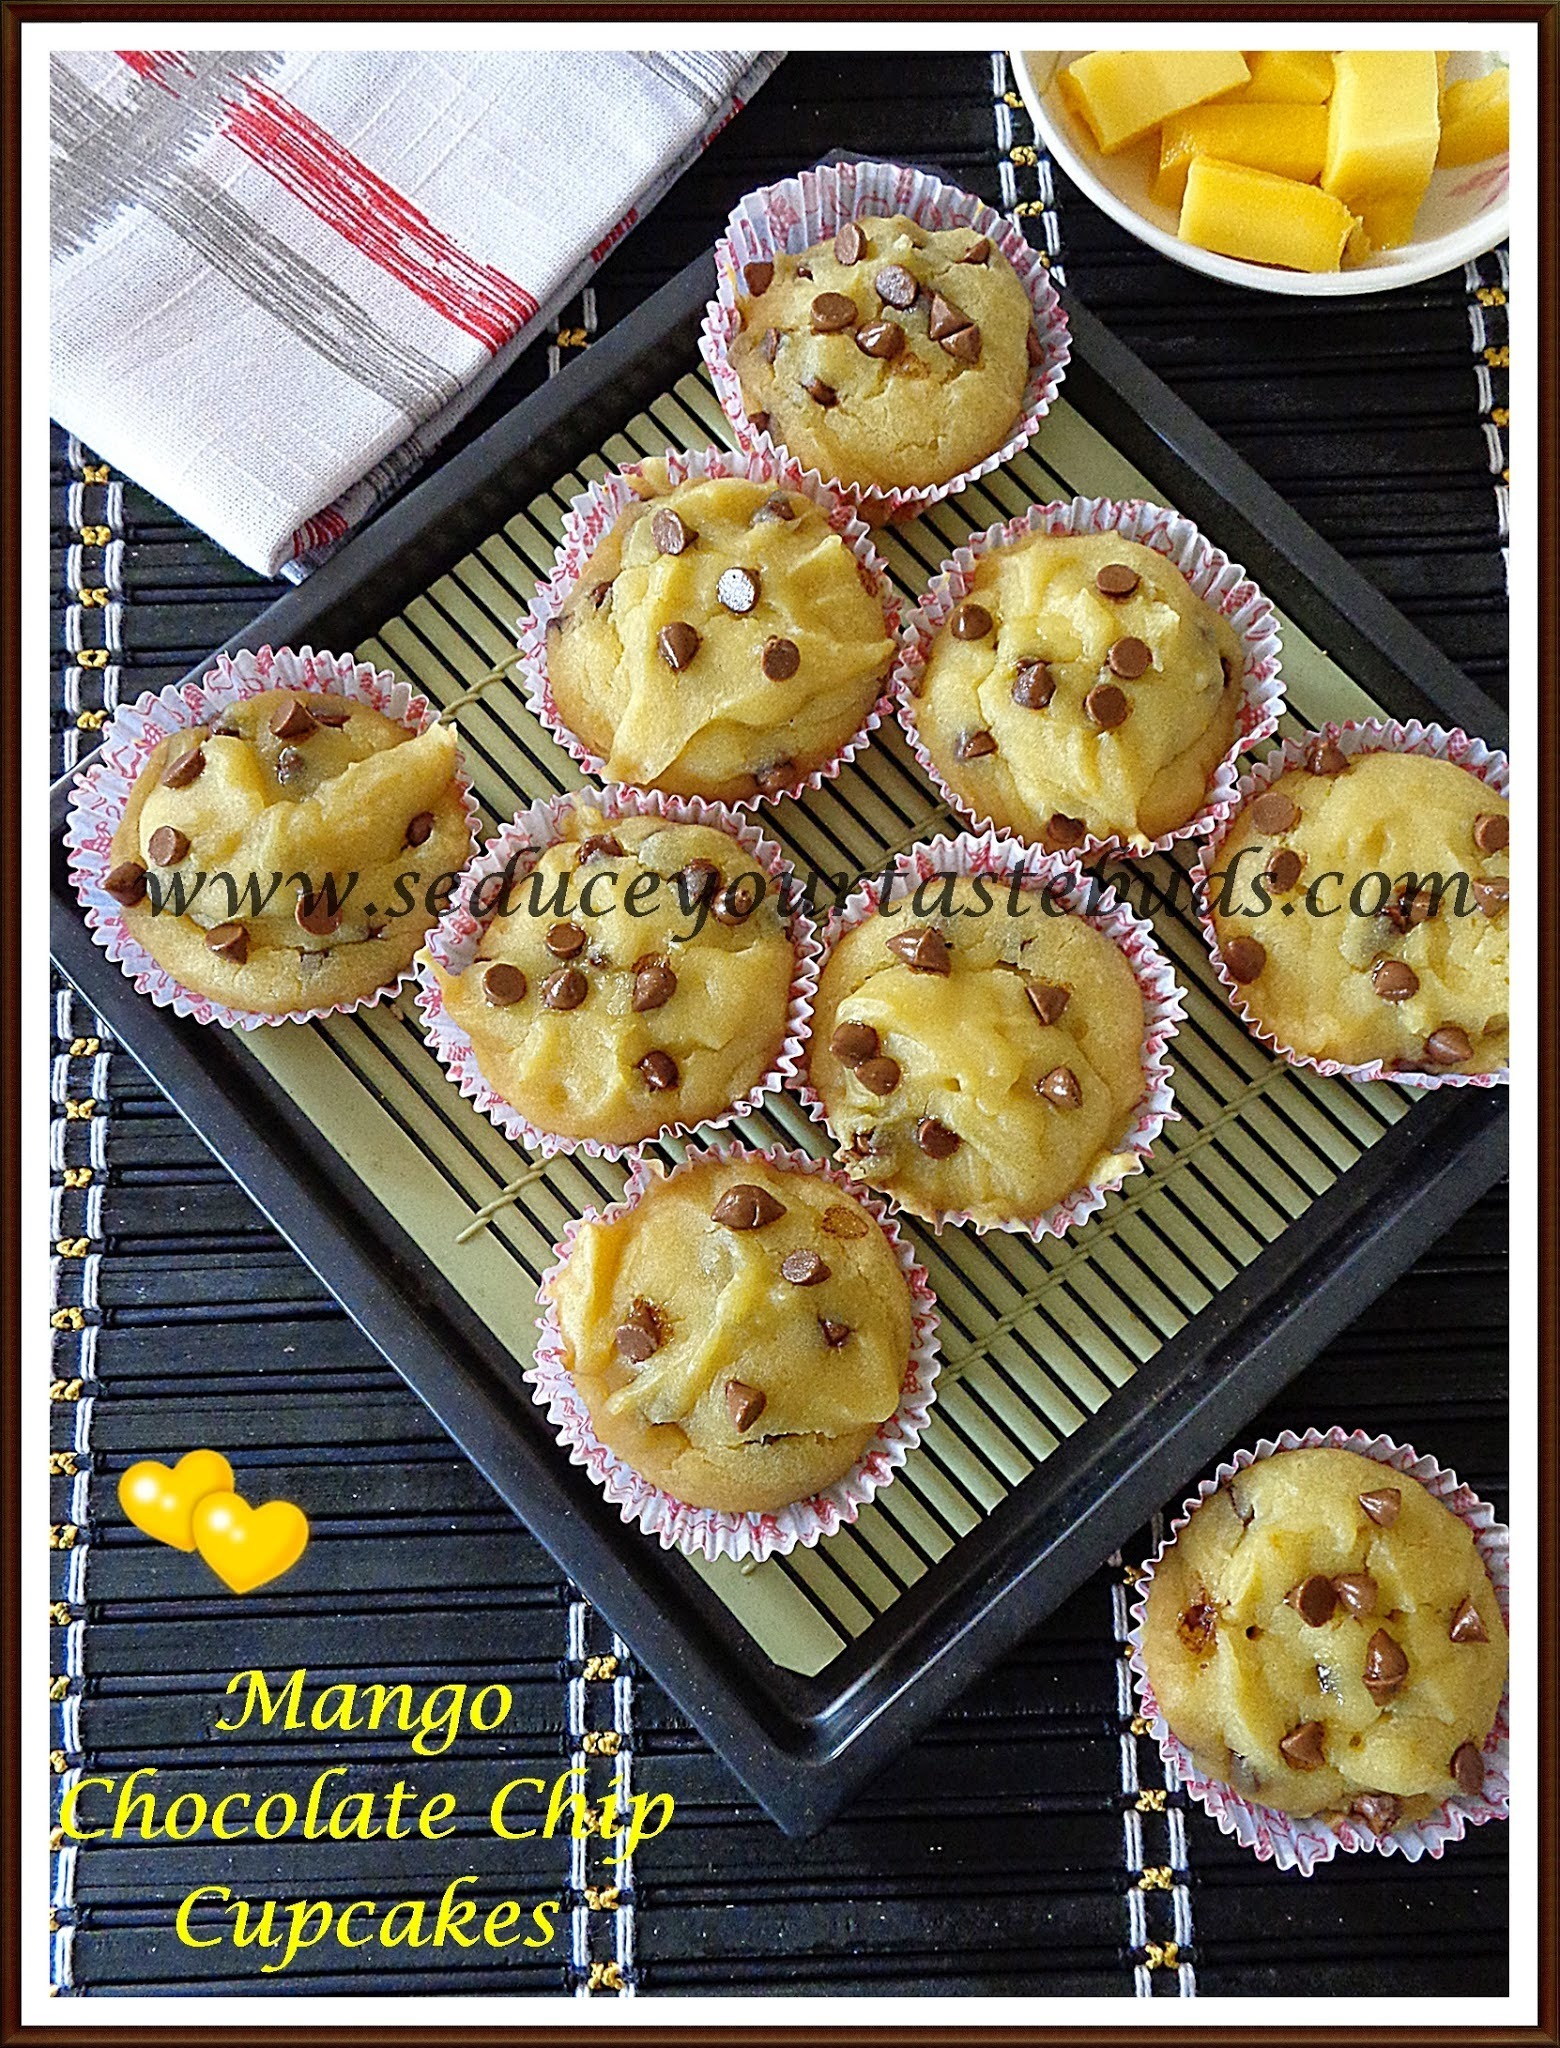 Eggless Mango Chocolate Chip Cupcakes | Baking with Fruits